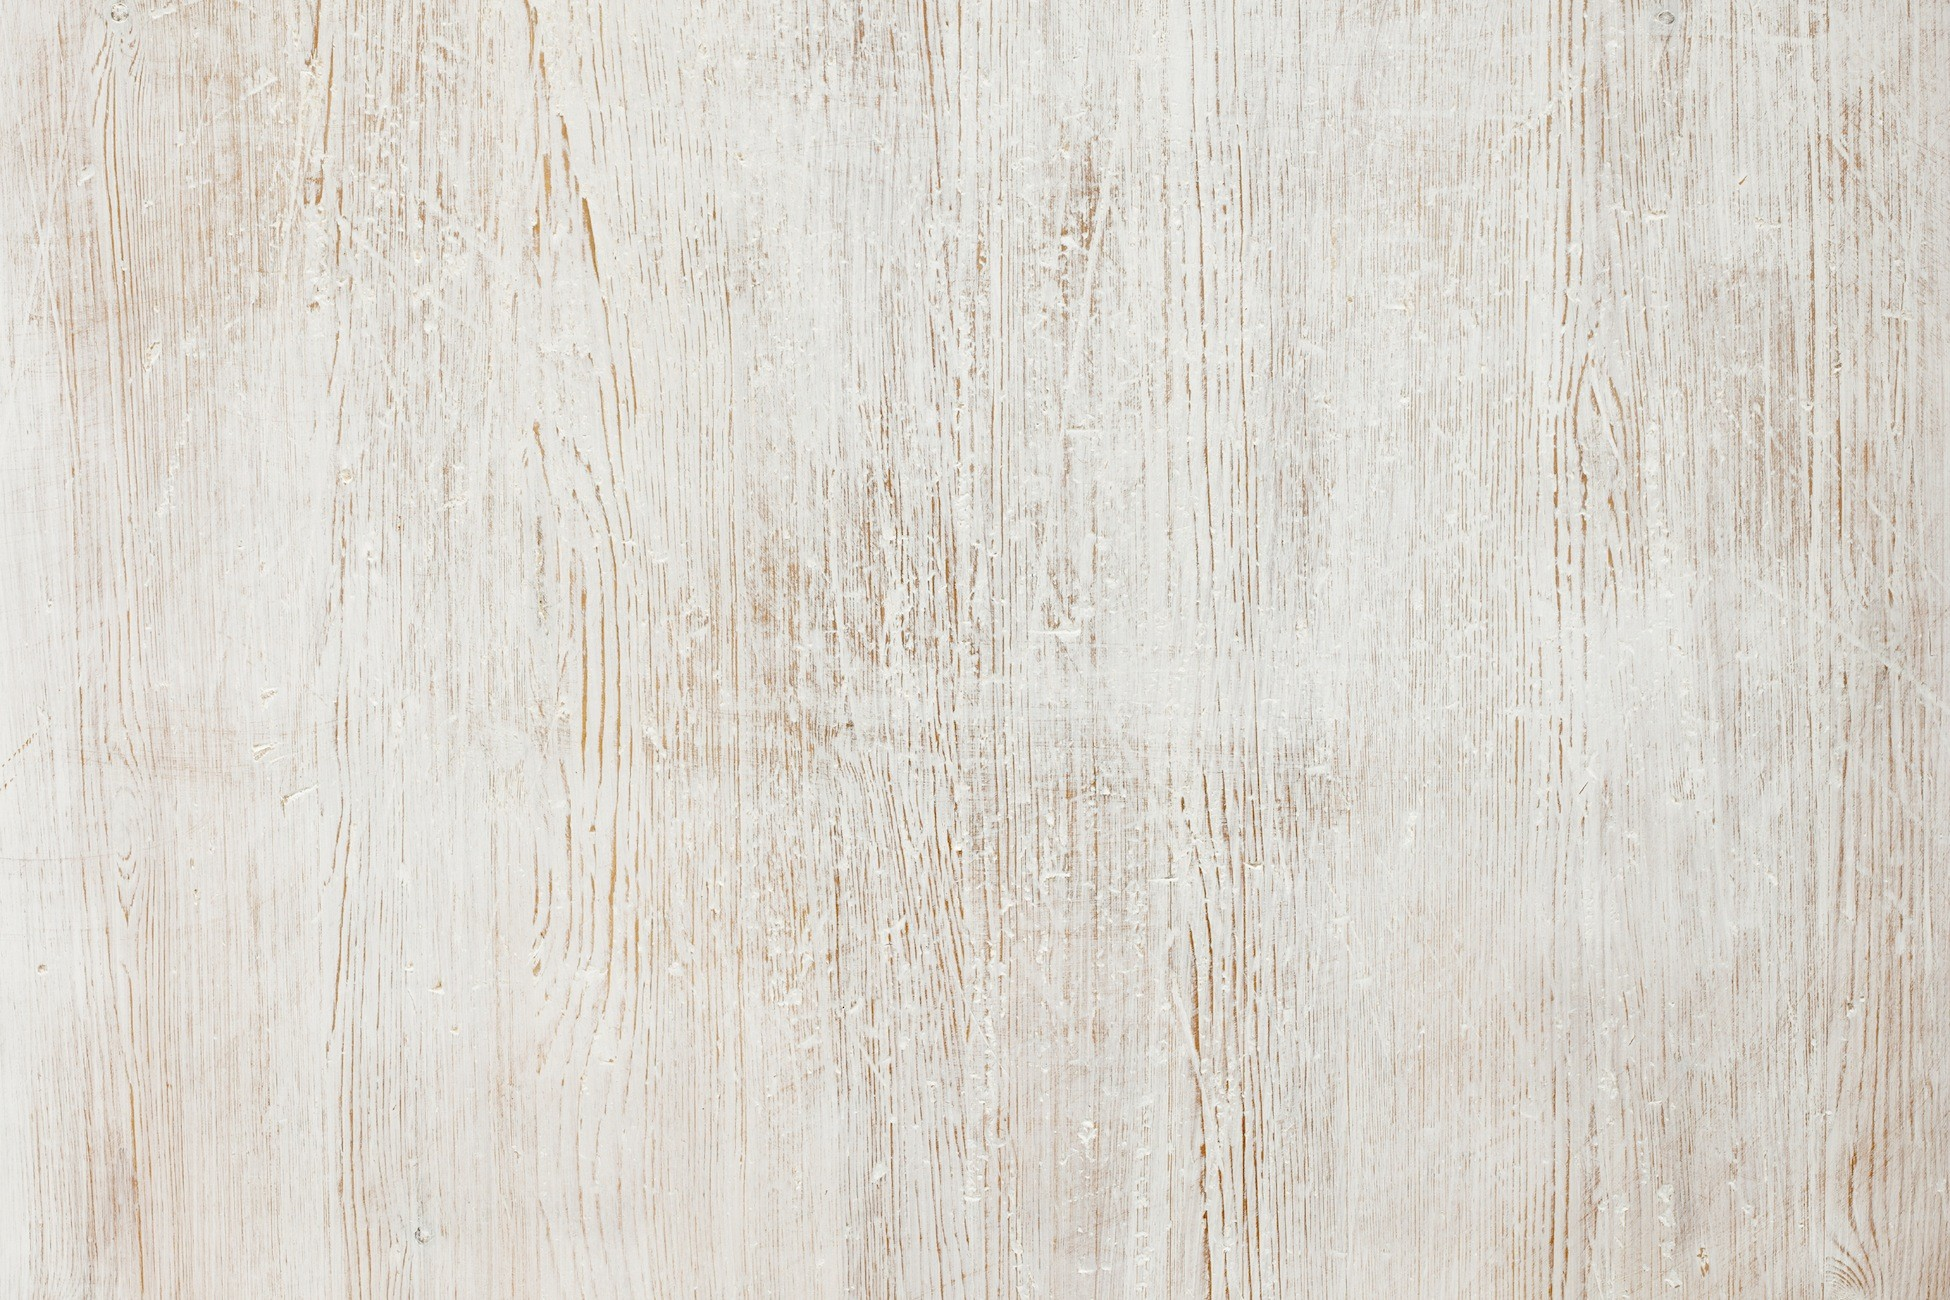 Old Wood Wallpaper Hd White Wood Background 183 ① Download Free Beautiful High